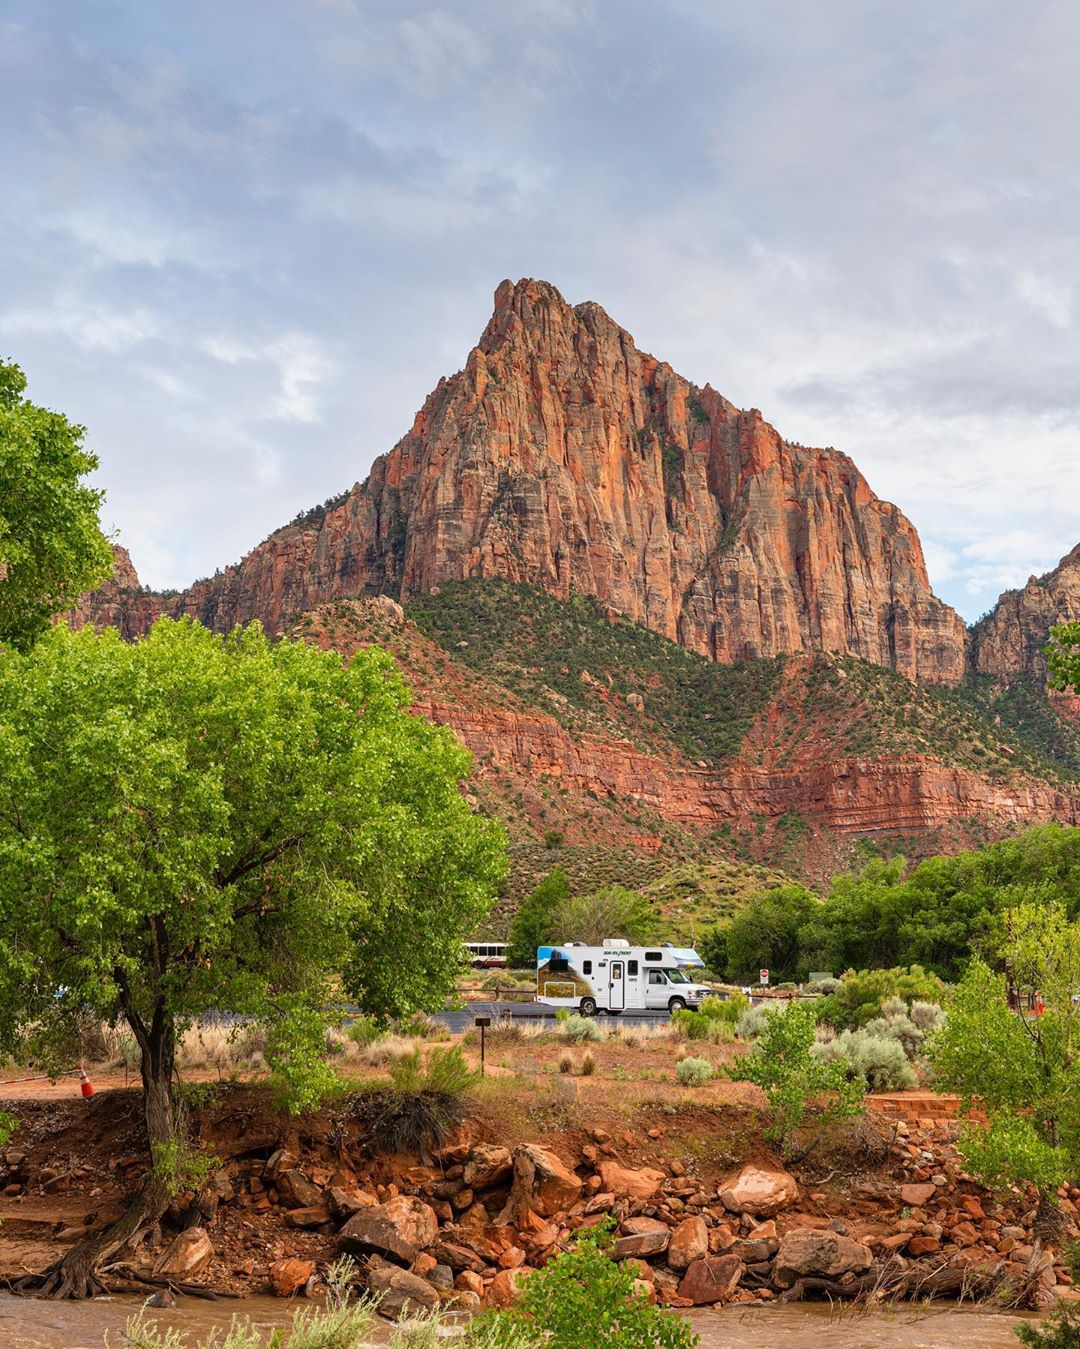 Cruise-America-RV-Rental-Zion-National-Park-jordanbanksphoto.jpg